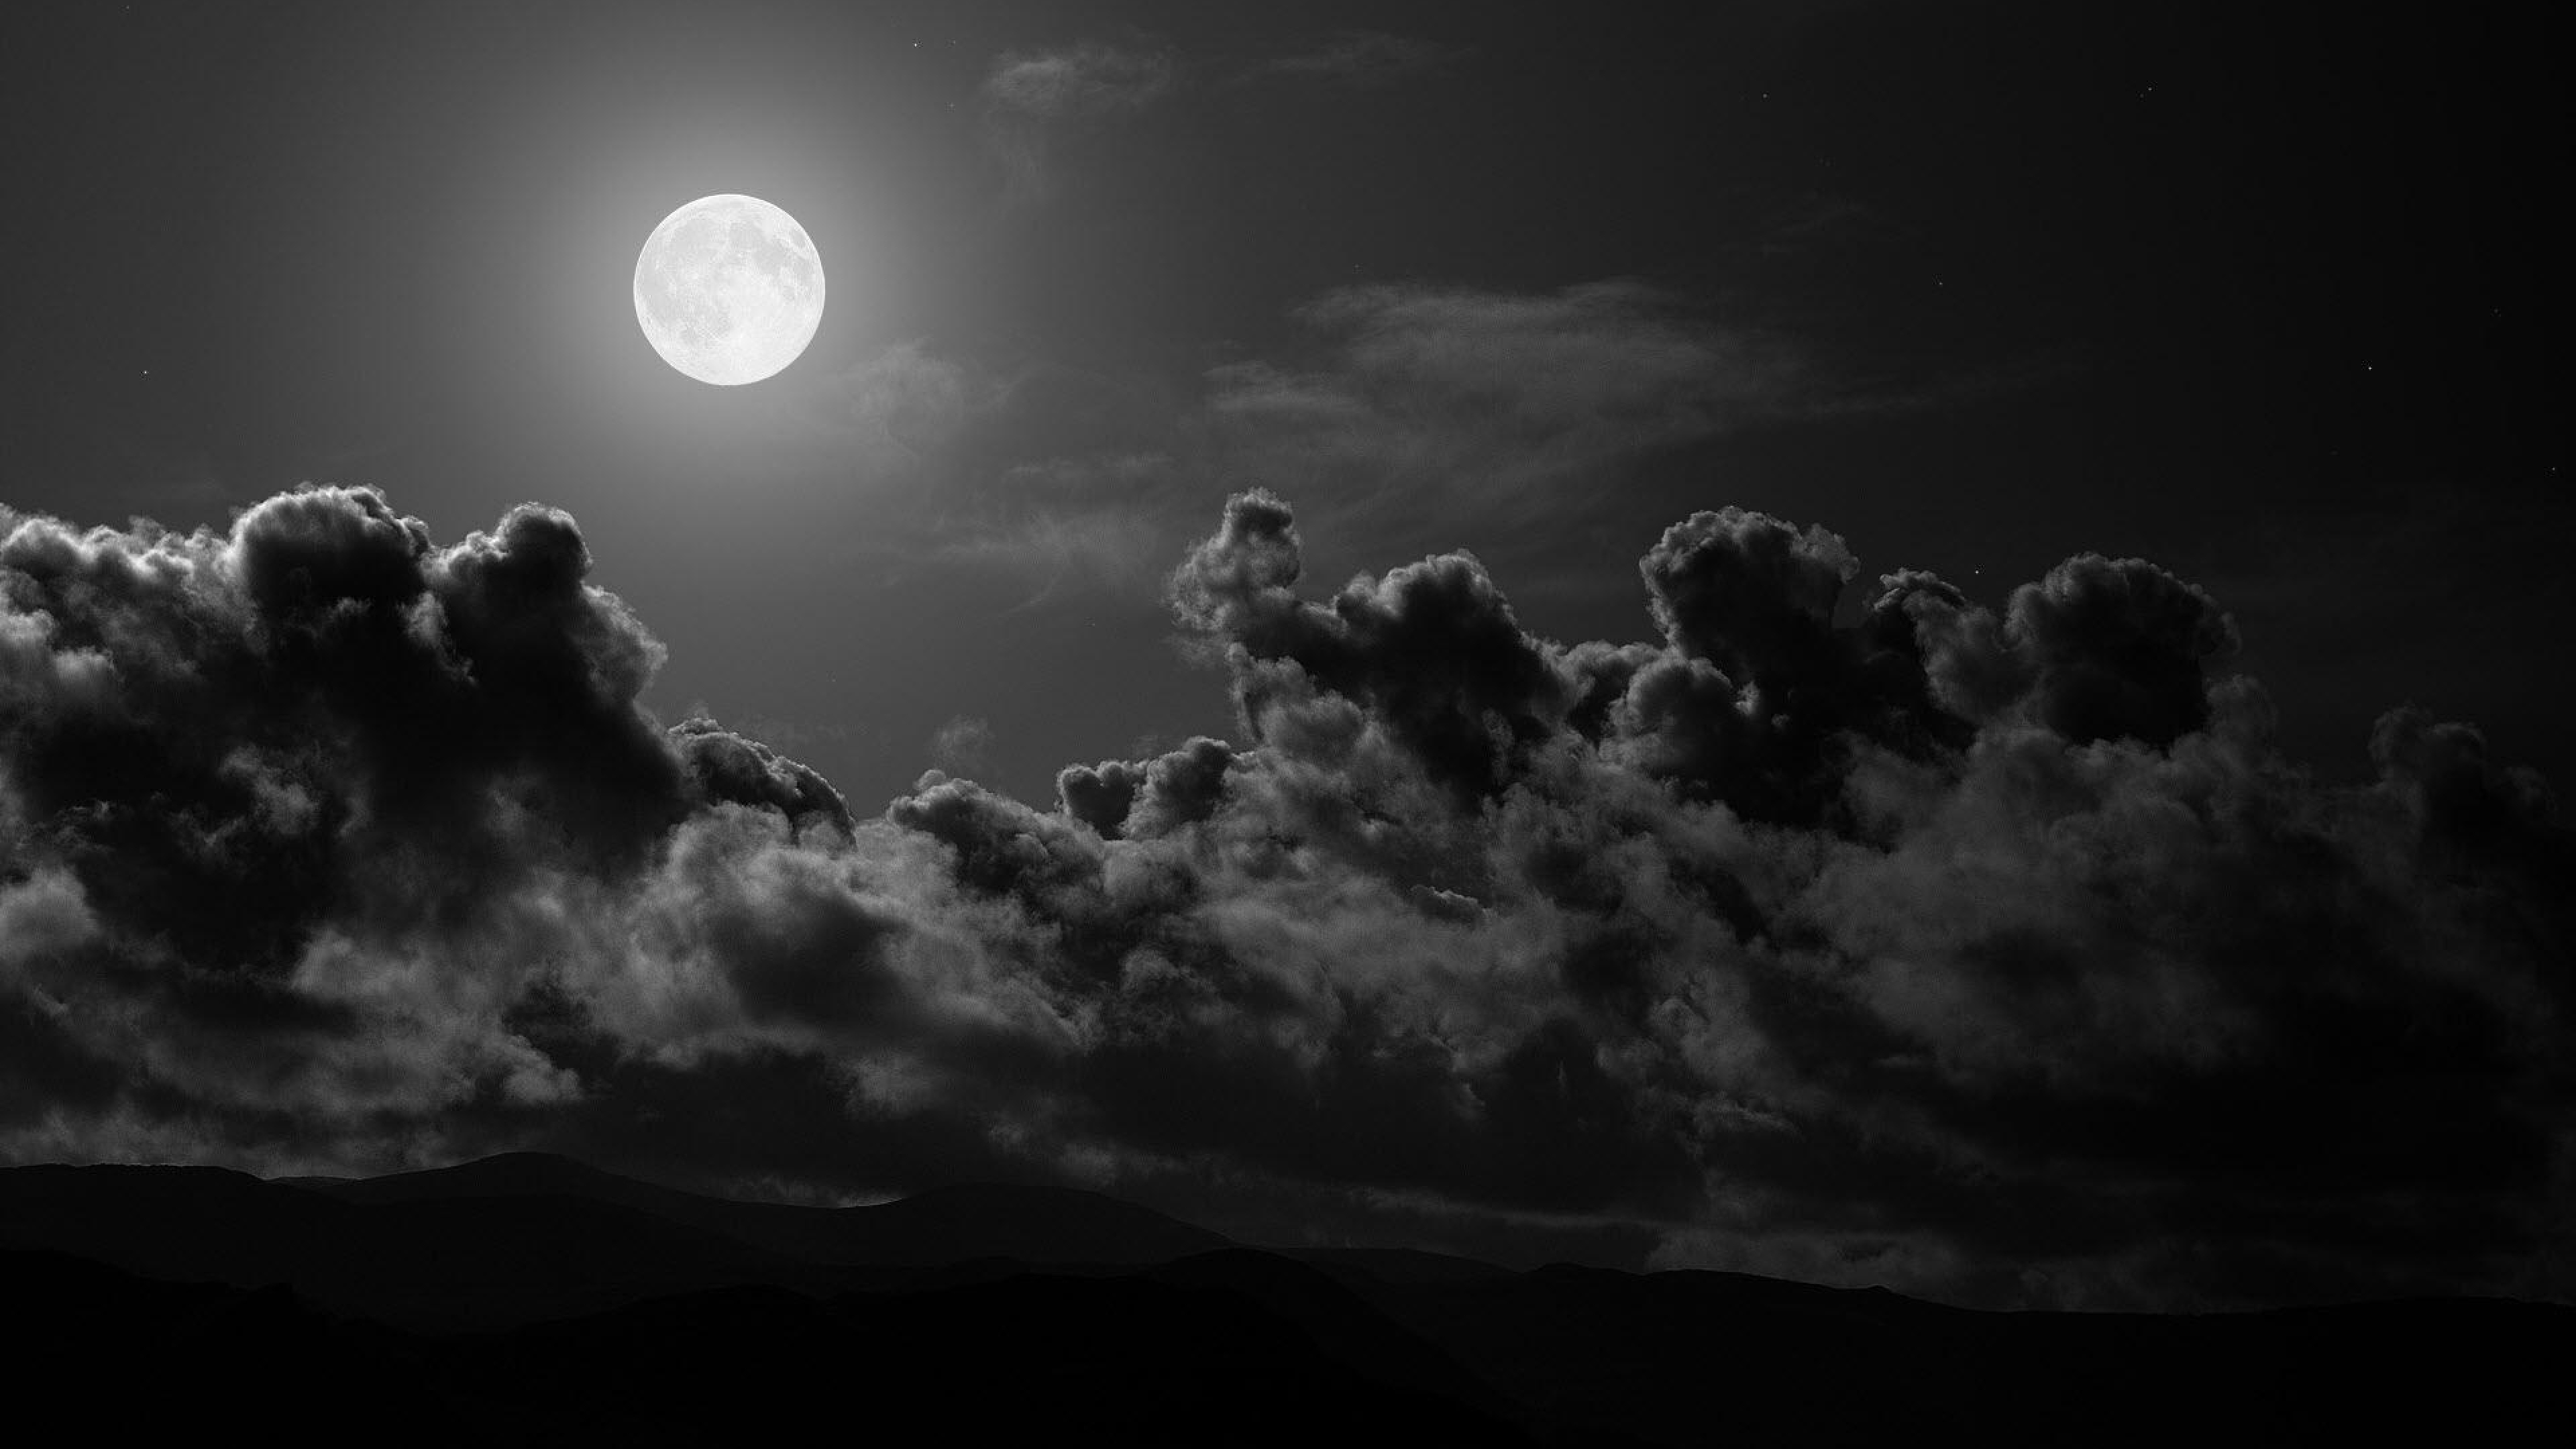 Moon Clouds Sky Black and white Wallpaper Background 4K Ultra HD 3840x2160